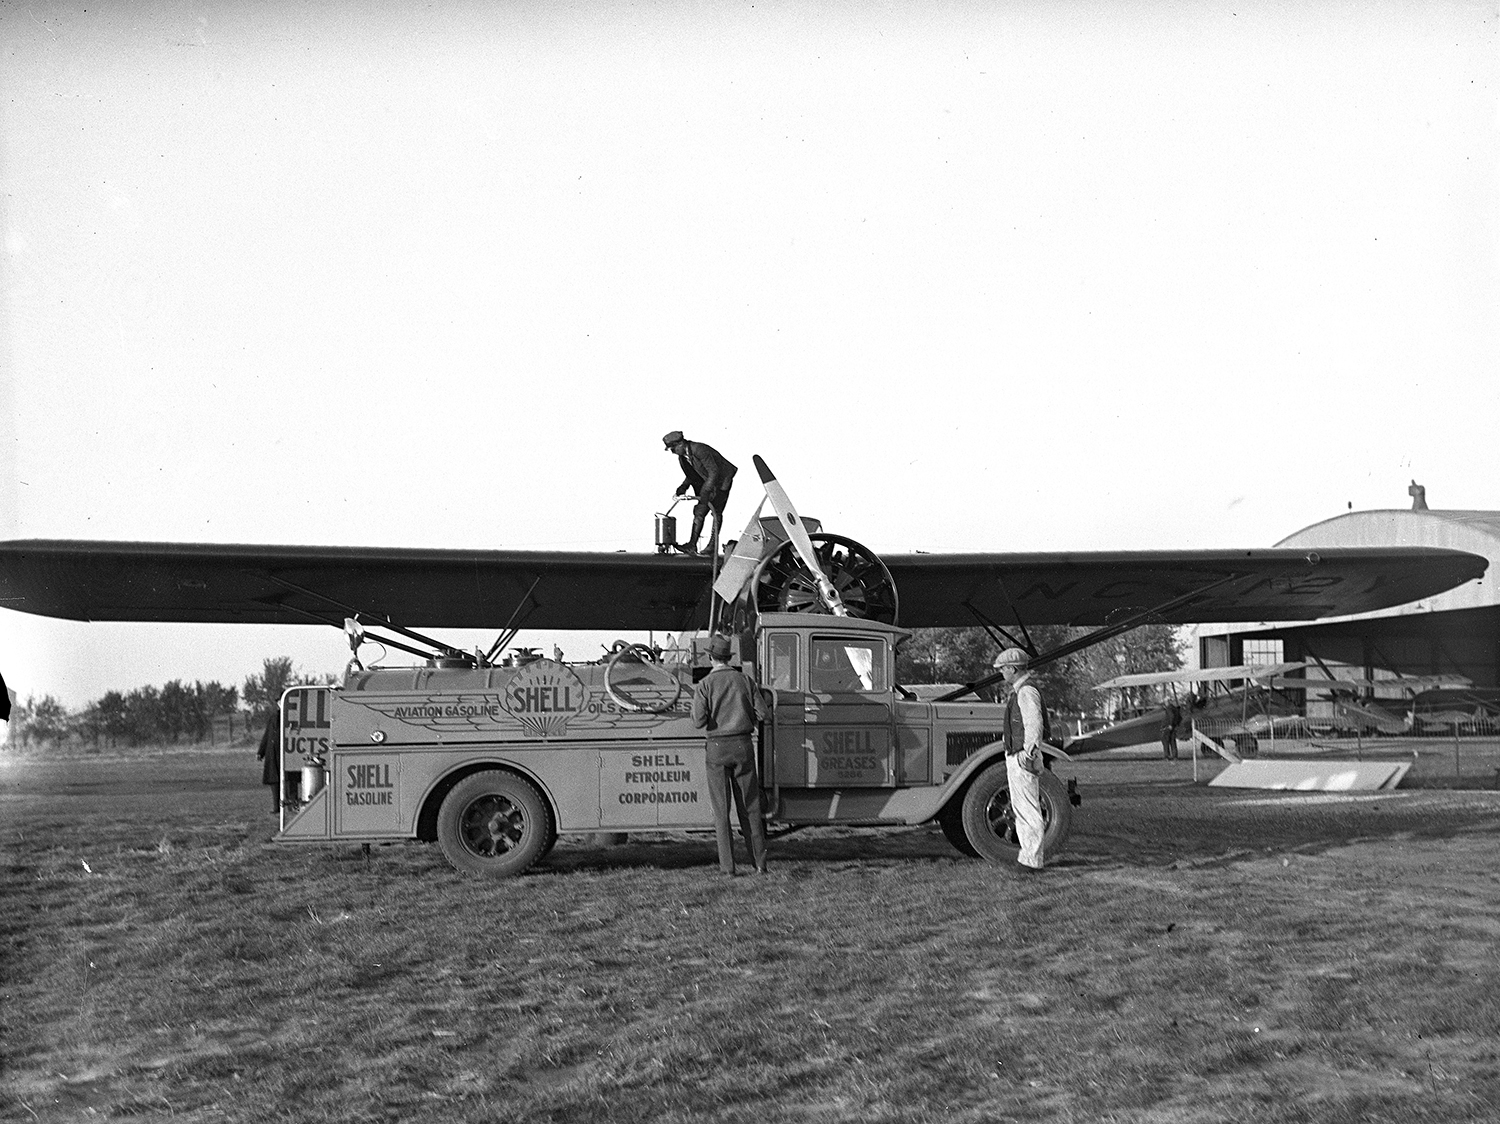 An American Airlines plane is refueled at the municipal airport Nov. 11, 1931. File/The State Journal-Register